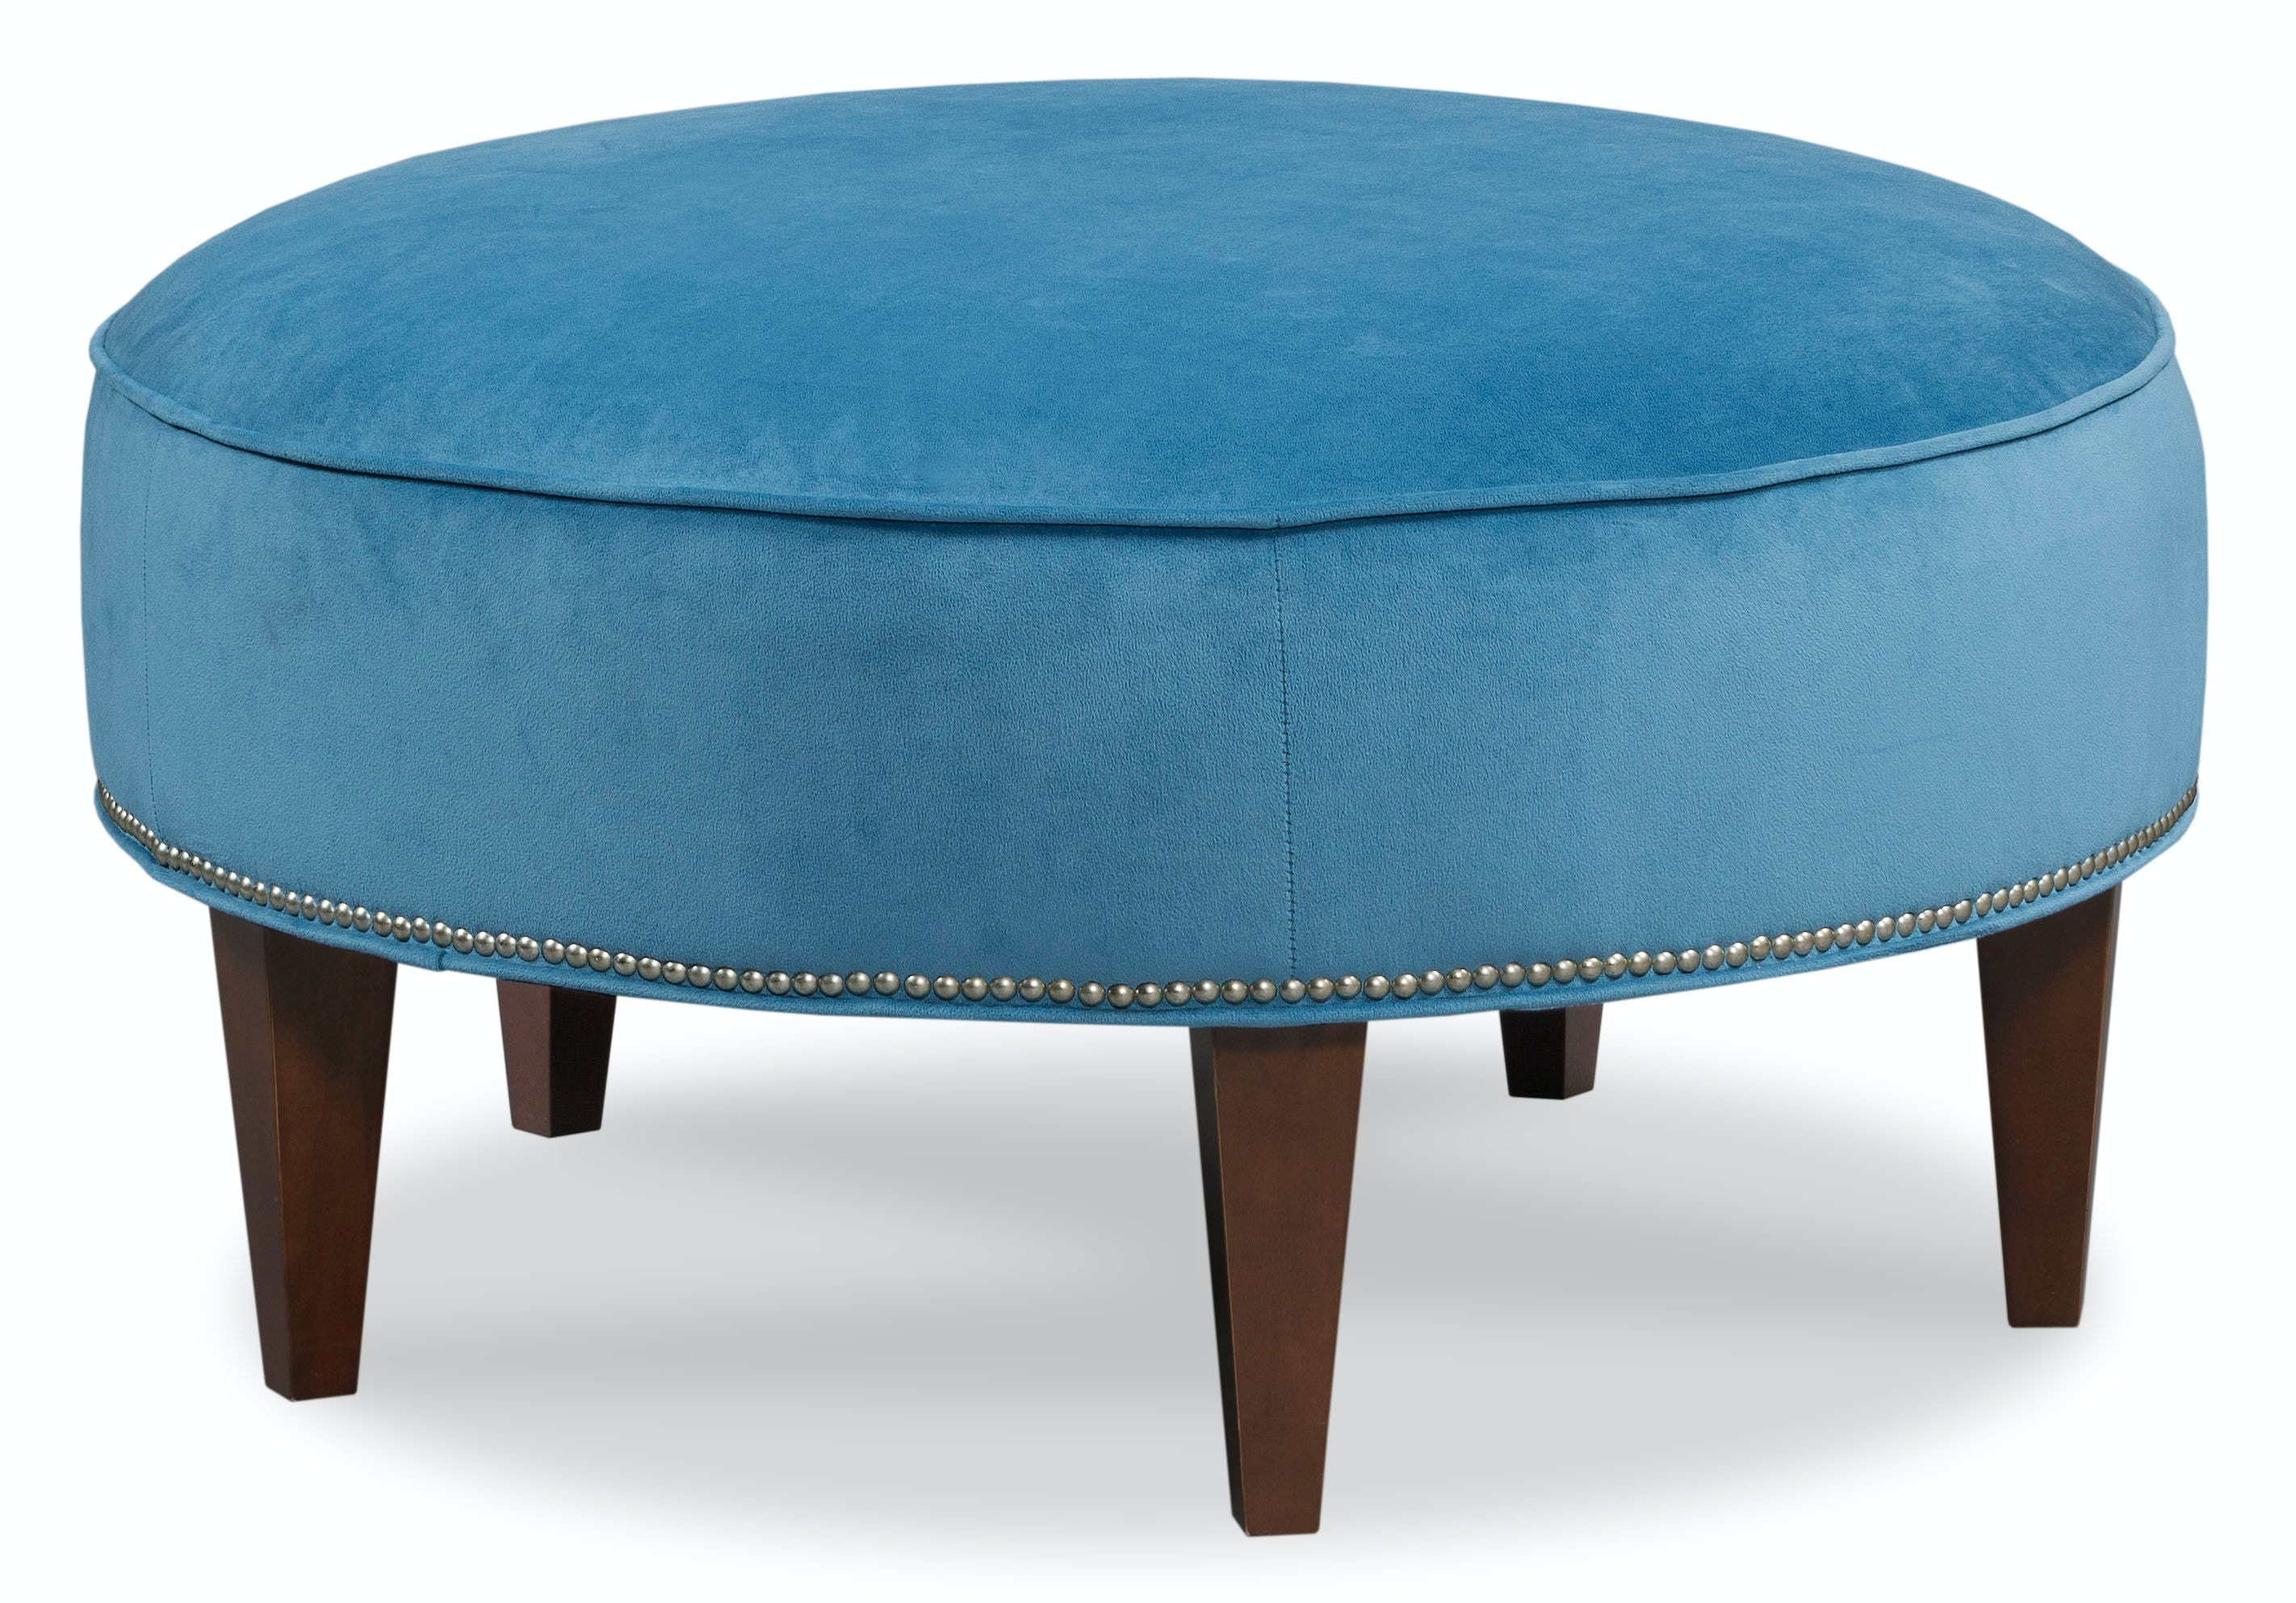 Fairfield Chair Company Joplin Cocktail Ottoman 1677 20